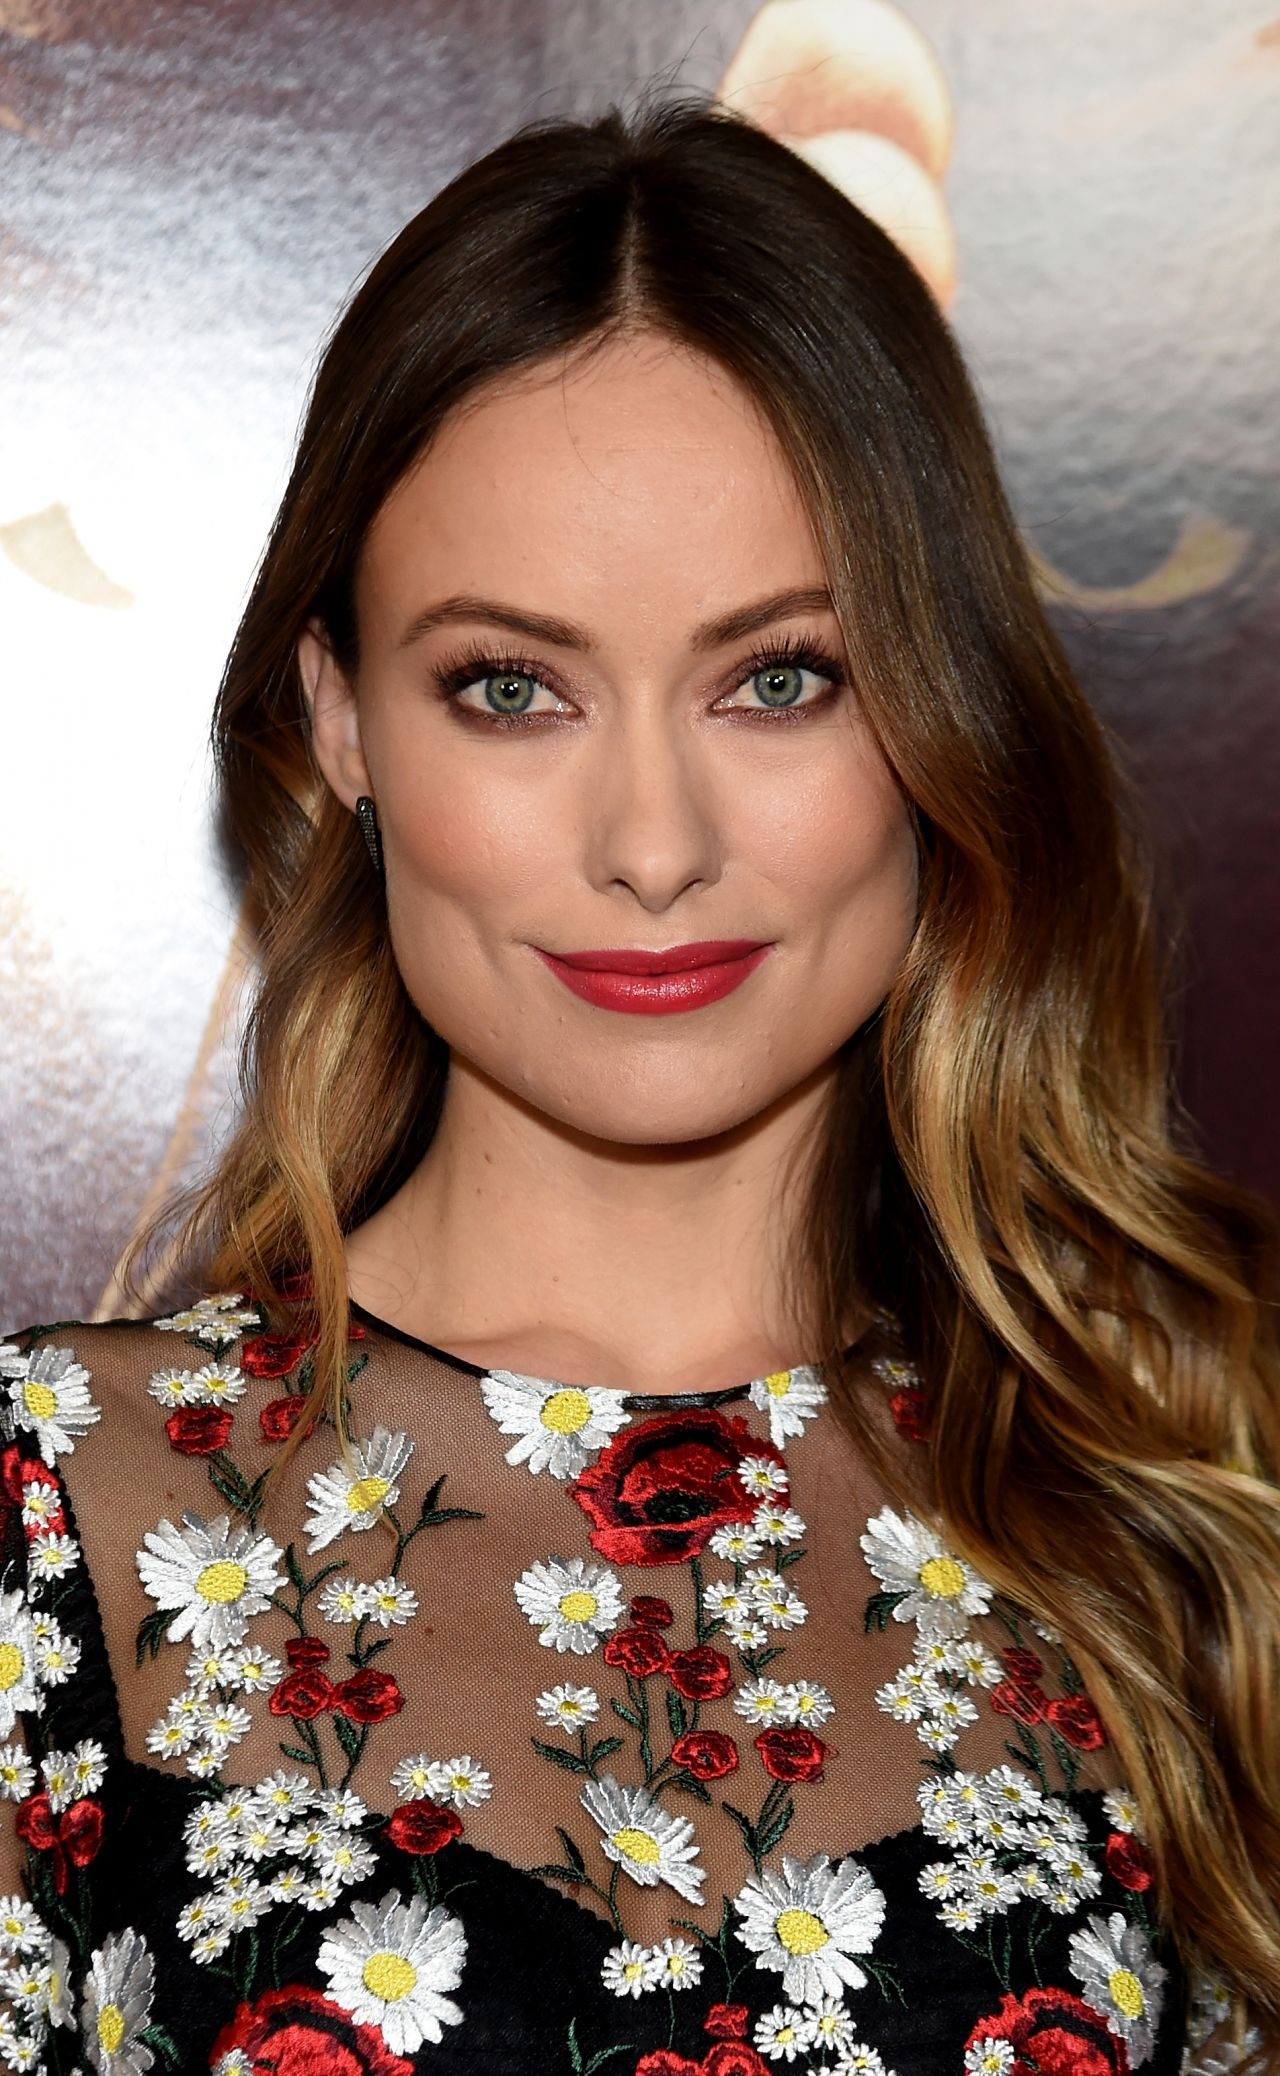 Olivia Wilde Profile And New Pictures 2013: Olivia WIlde In Dolce And Gabbana Focus Features' 'Race